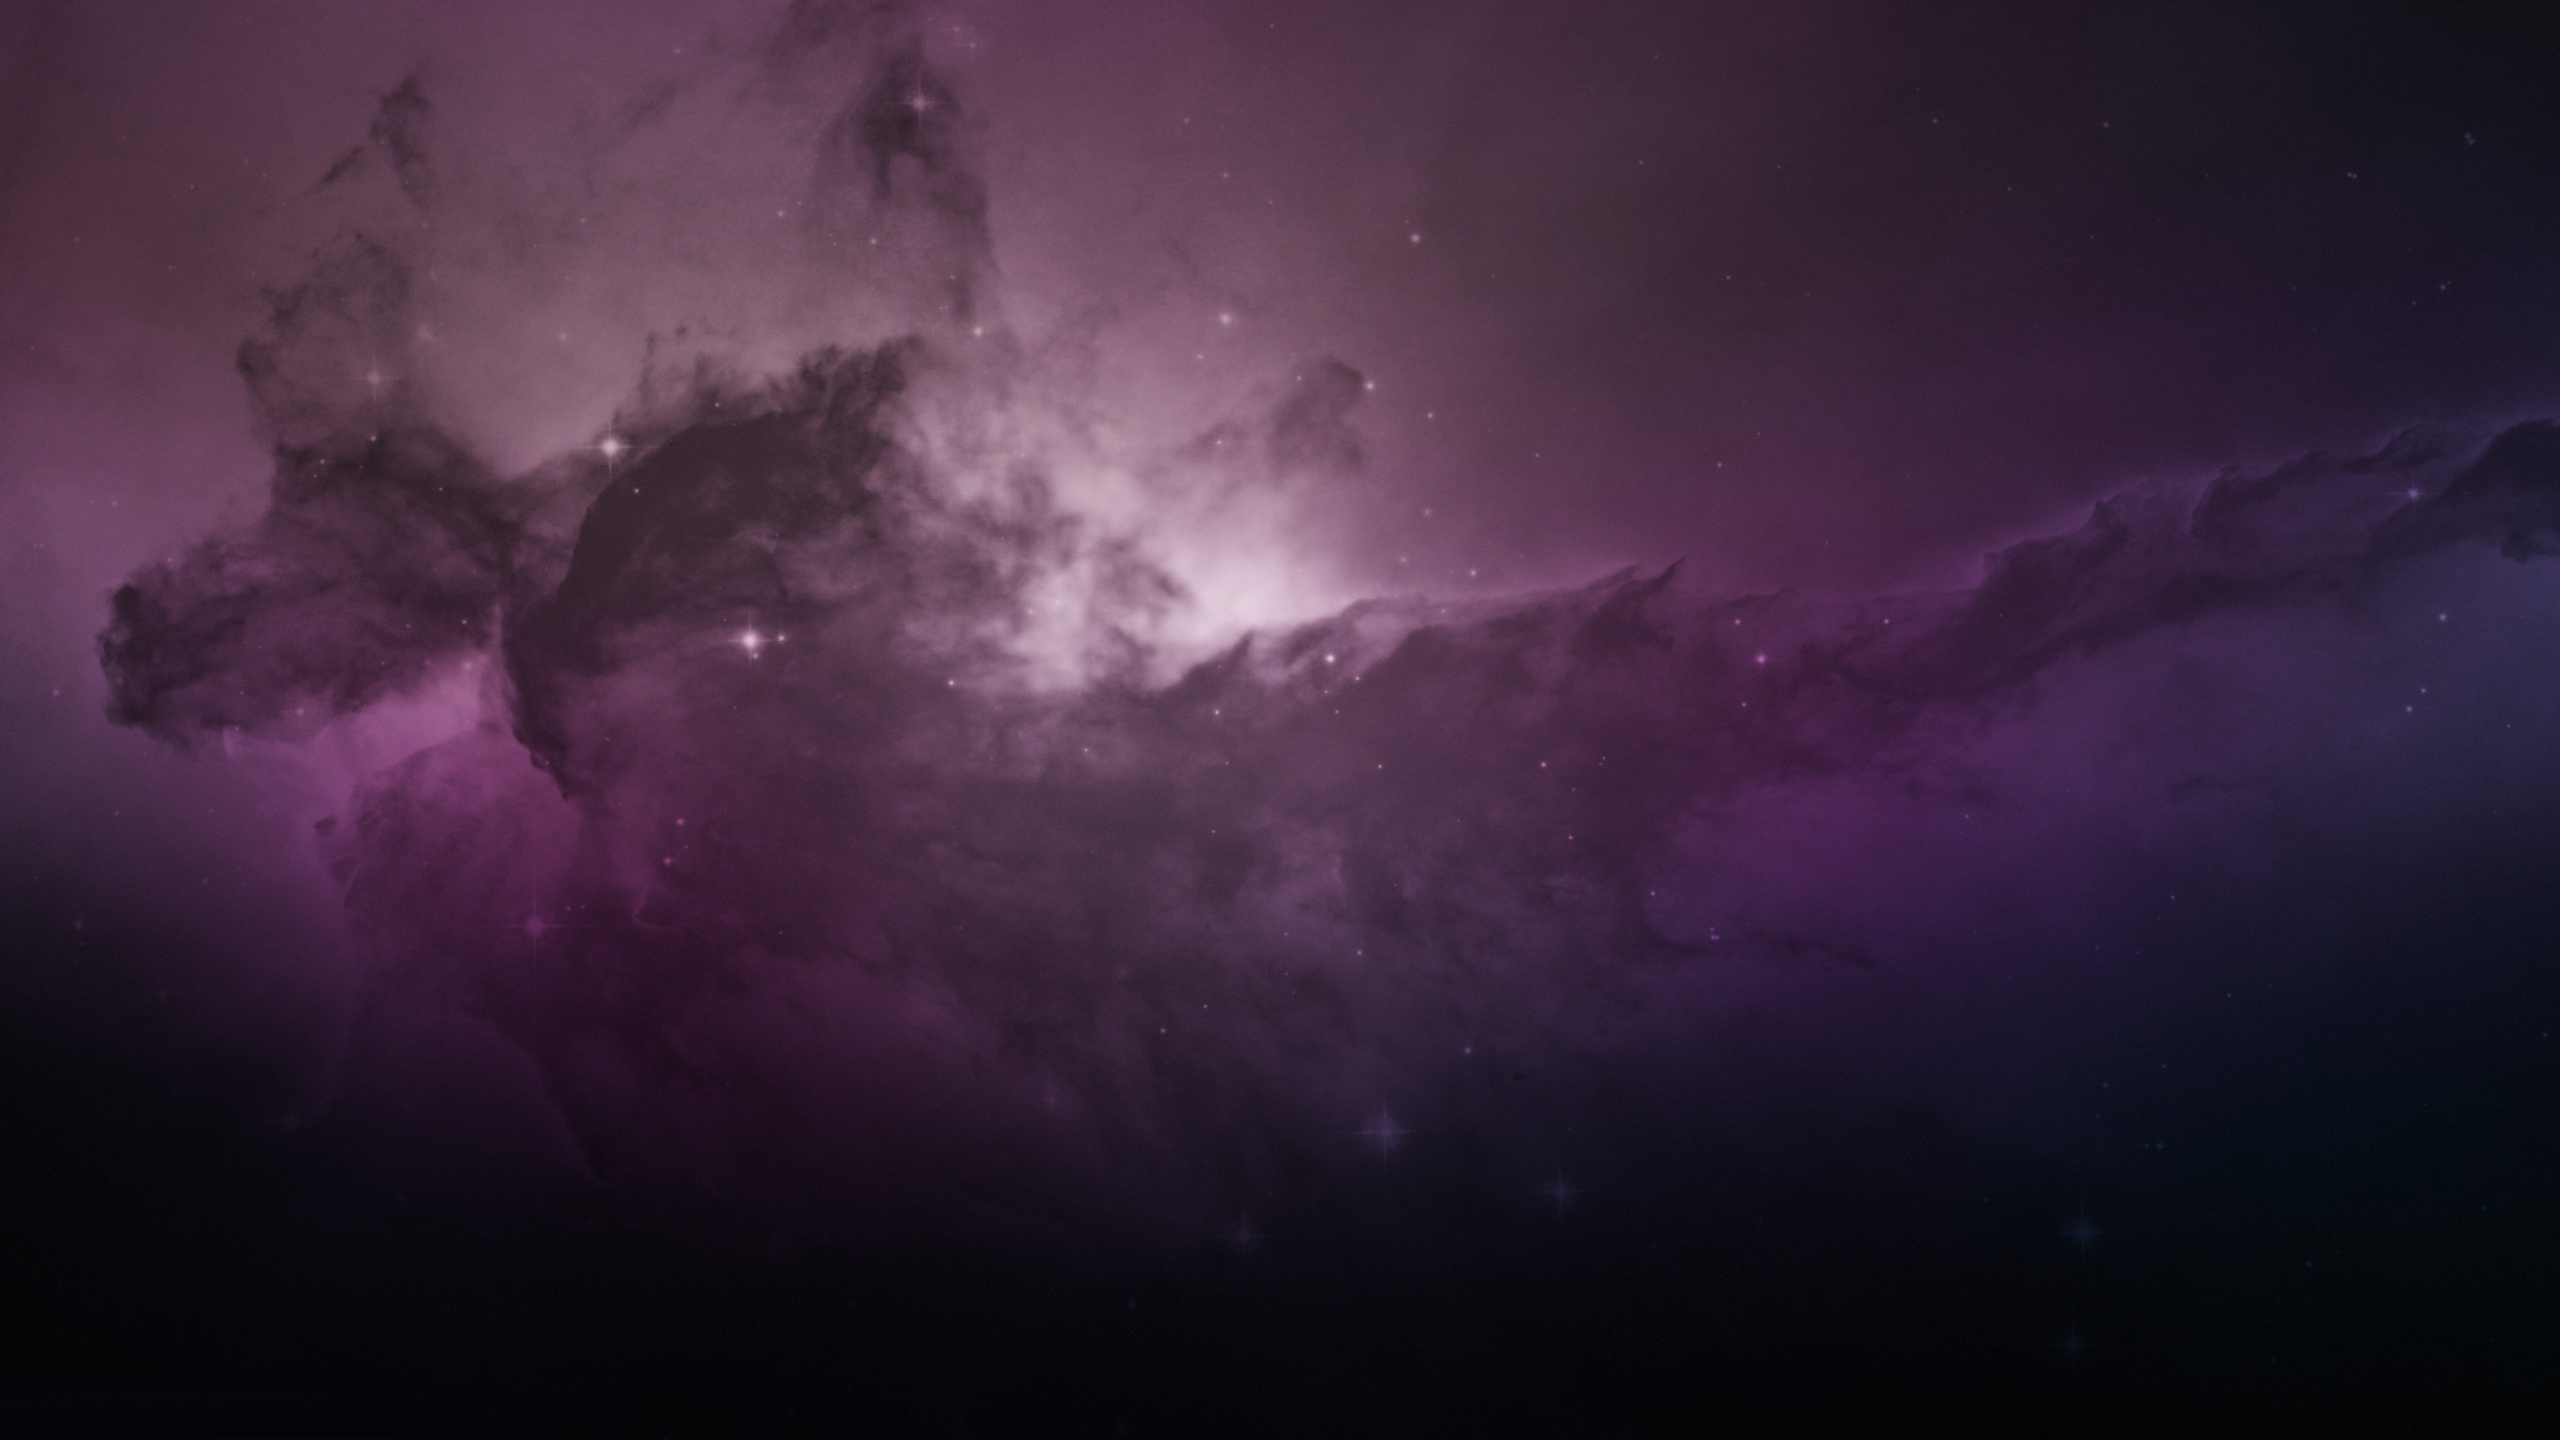 2560x1440 Wallpaper Space Wallpaper nebula eagle 2560x1440